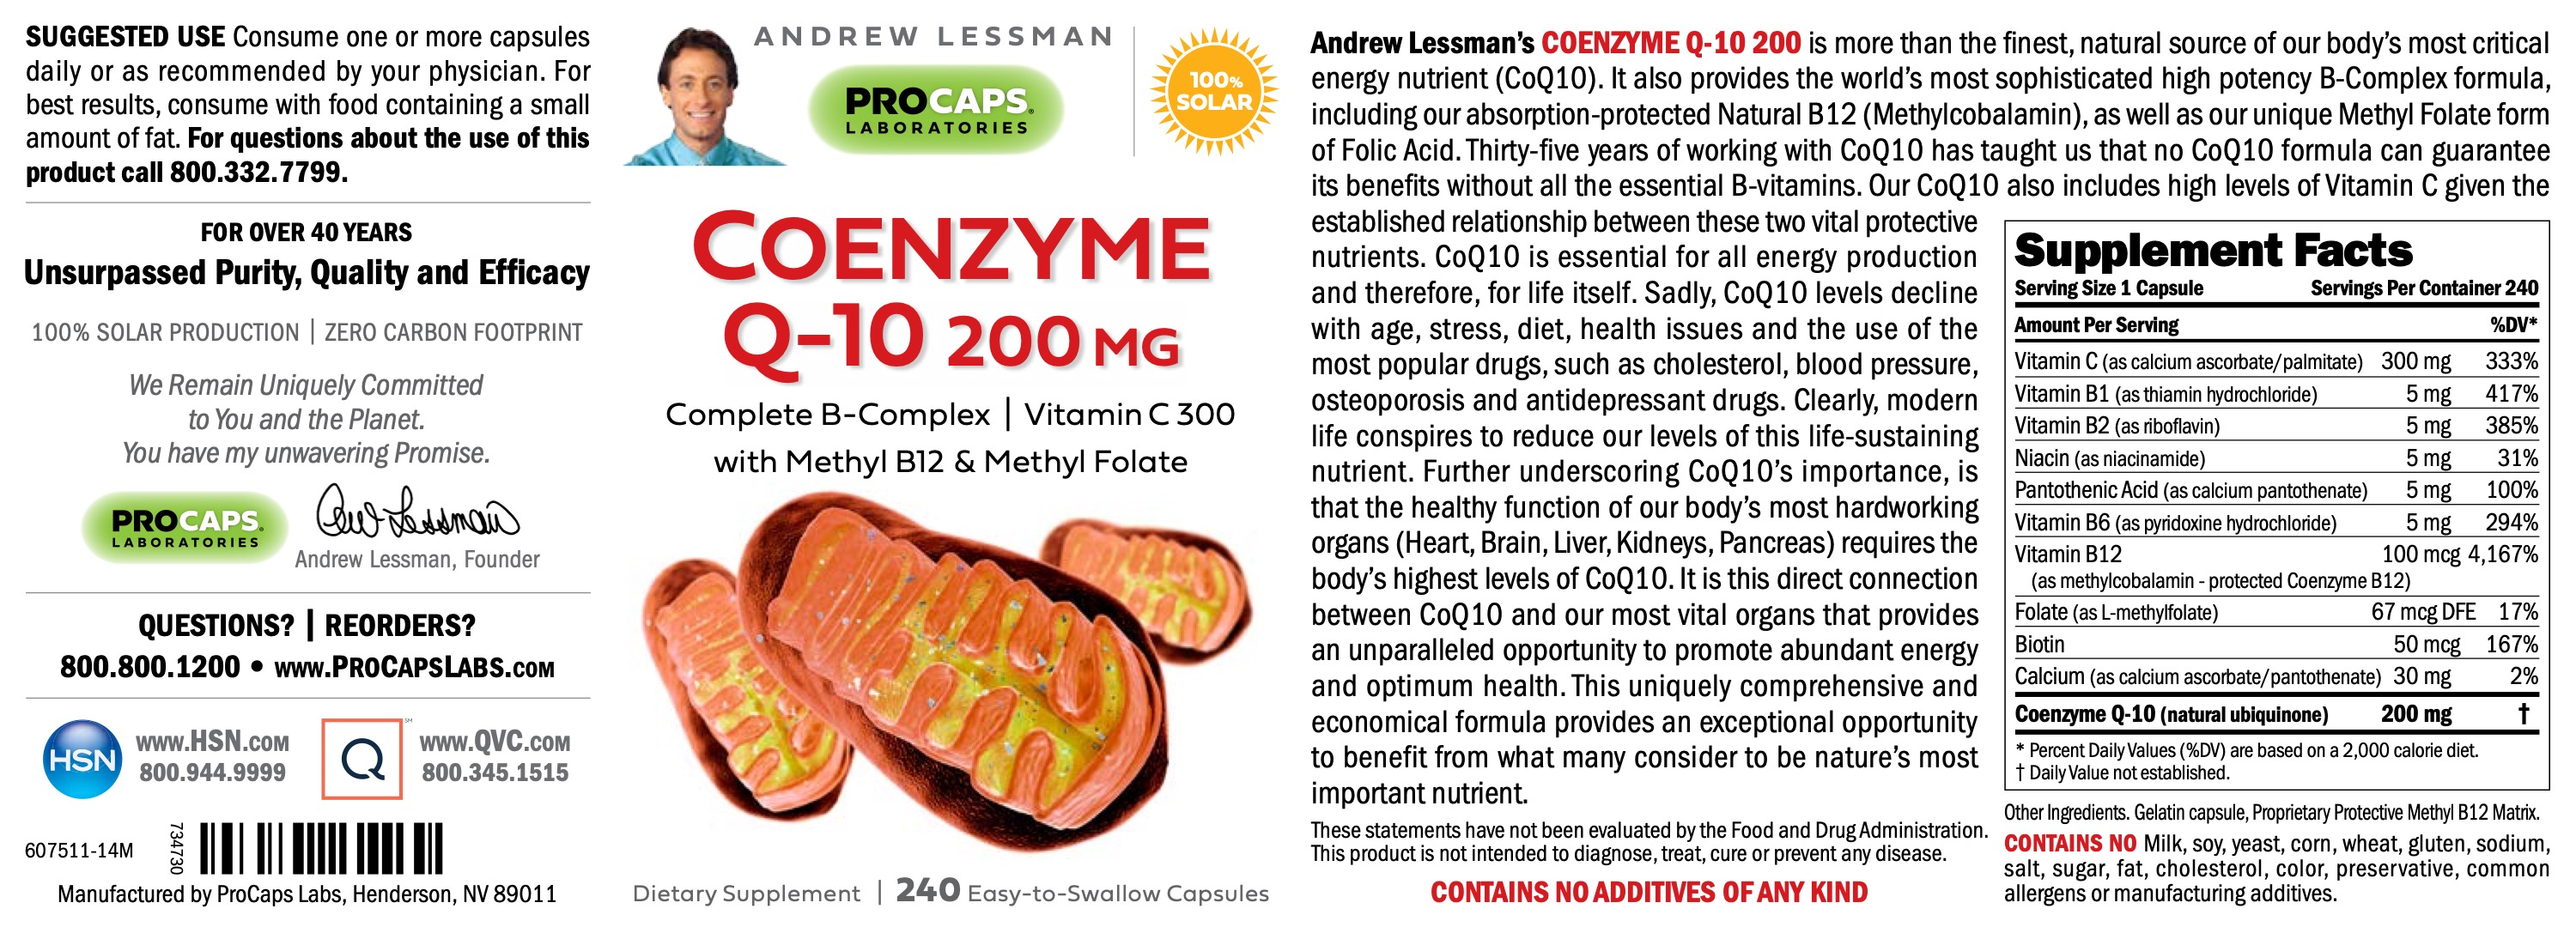 CoEnzyme-Q-10-200-mg-Today-s-Special-Capsules-Anti-oxidants